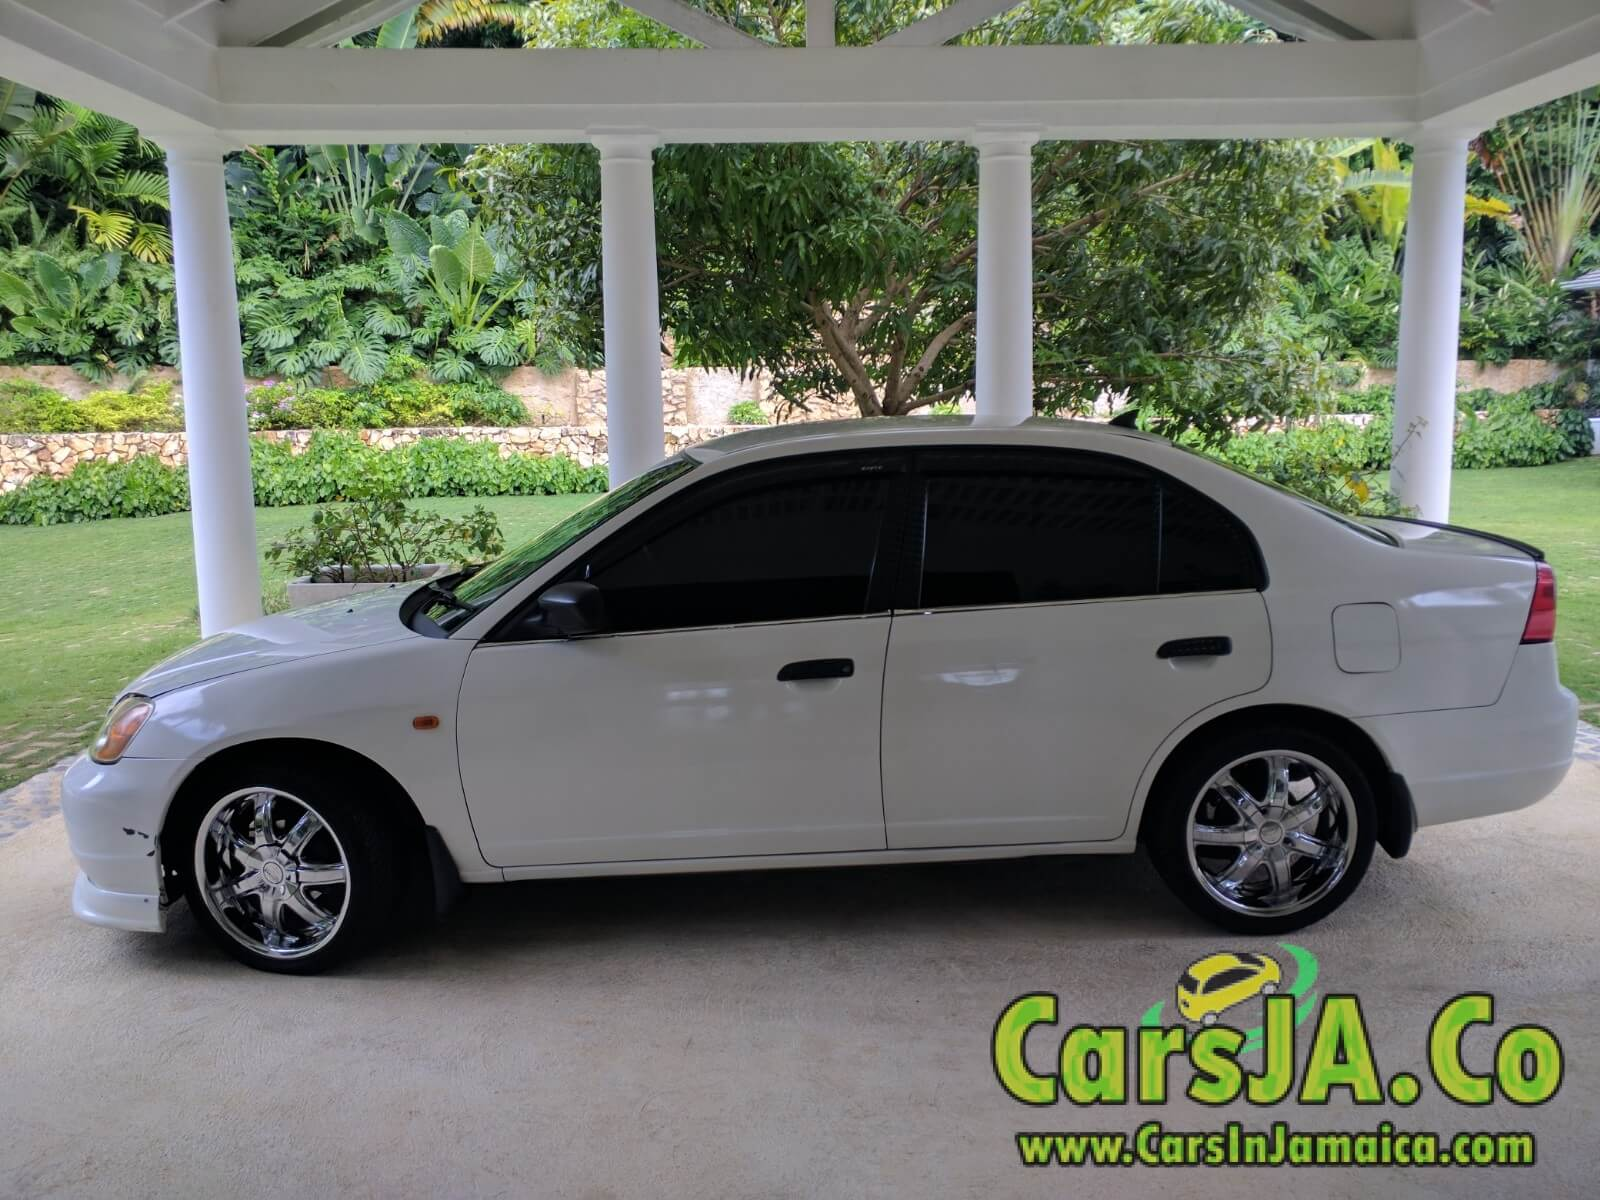 Cars For Sale In Jamaica Honda Civic: Honda For Sale In Jamaica